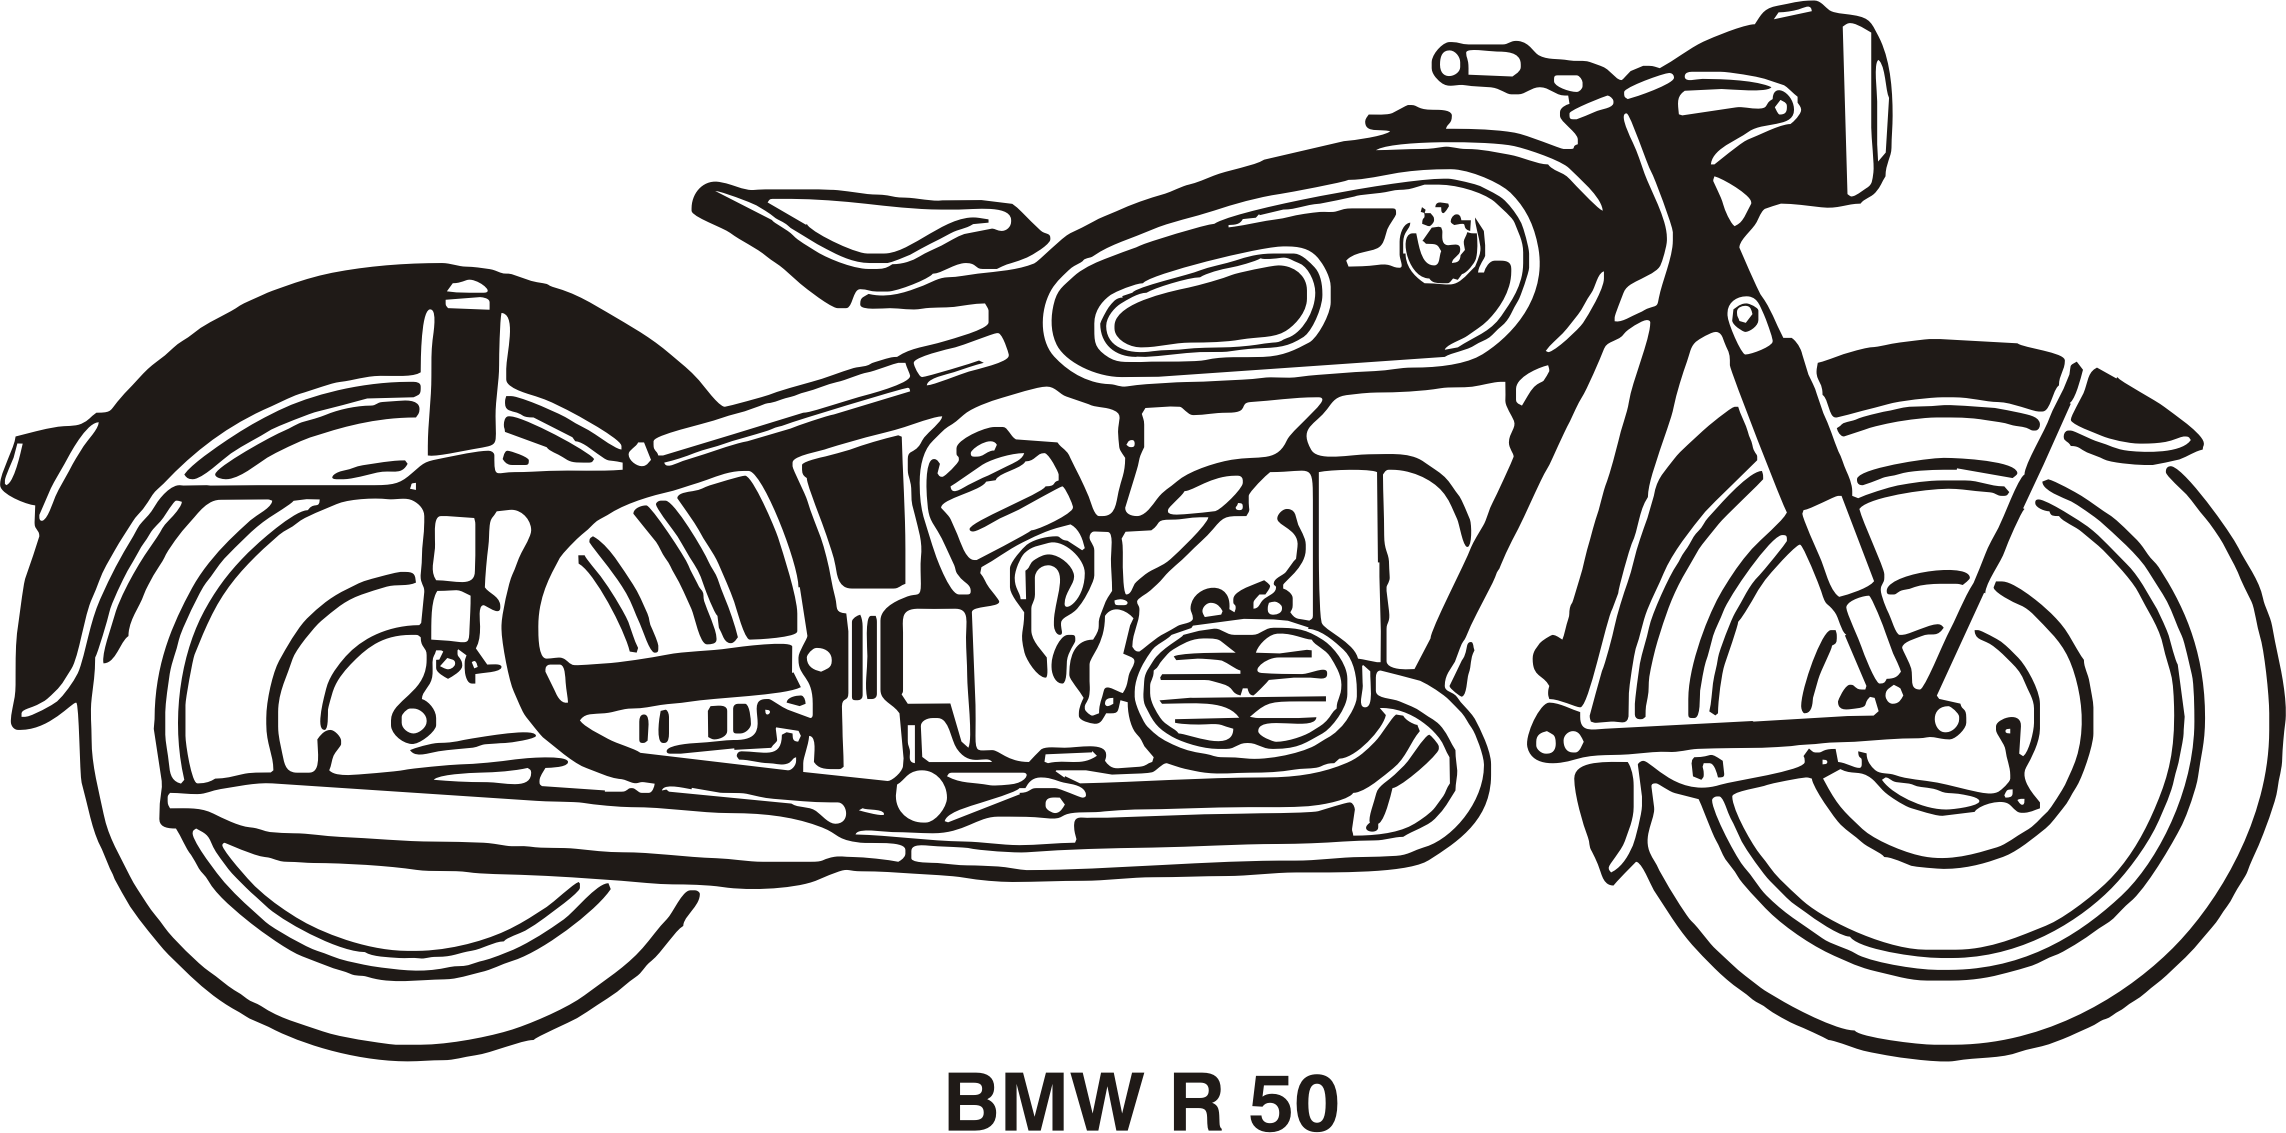 Clipart Bmw R50 Year 1958